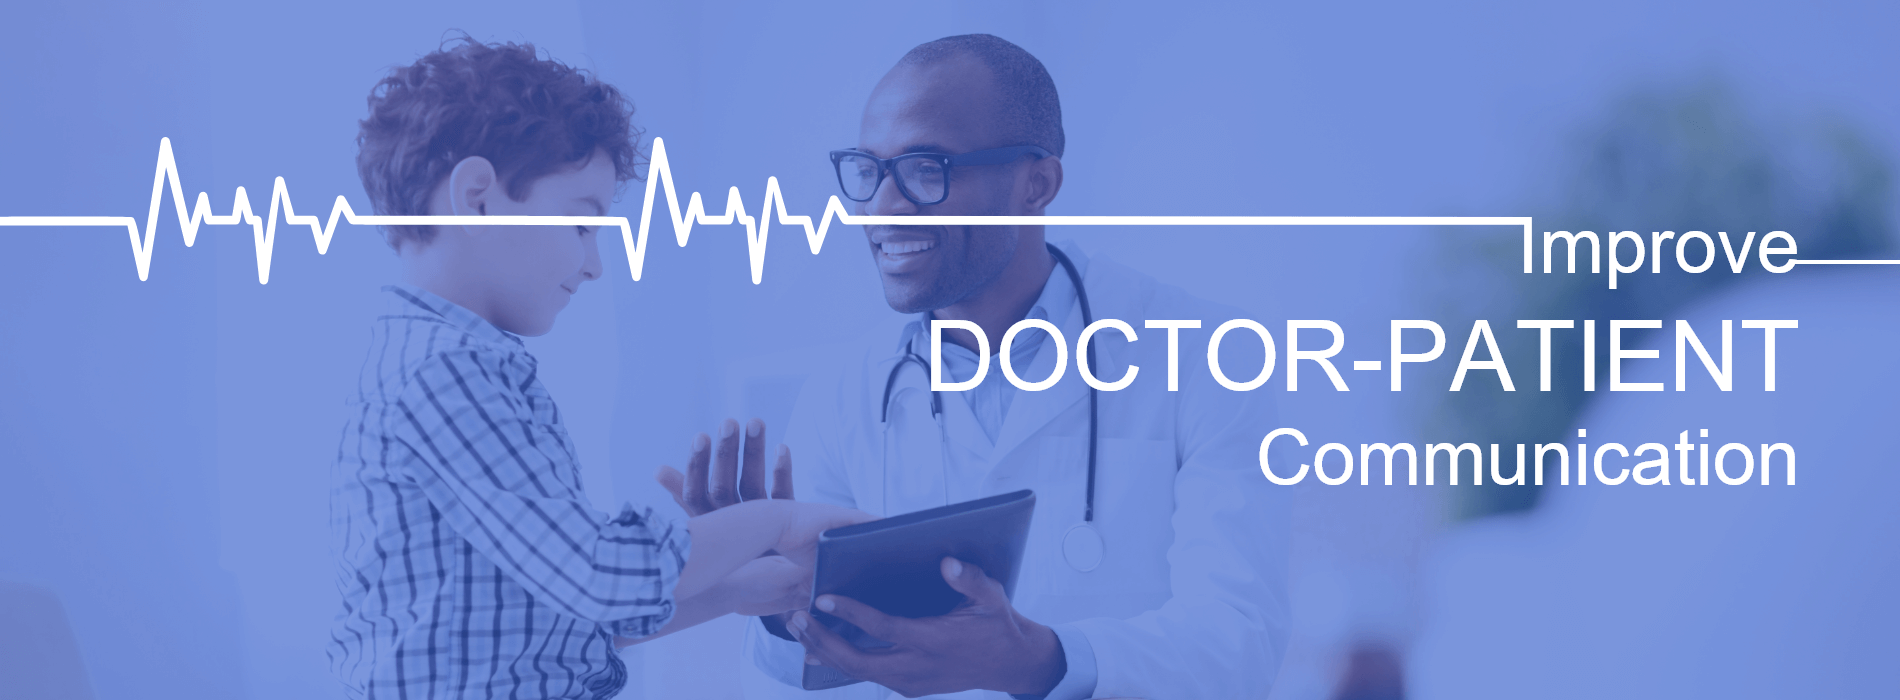 Are You Taking A Swift Action To Improve Doctor-Patient Communication?